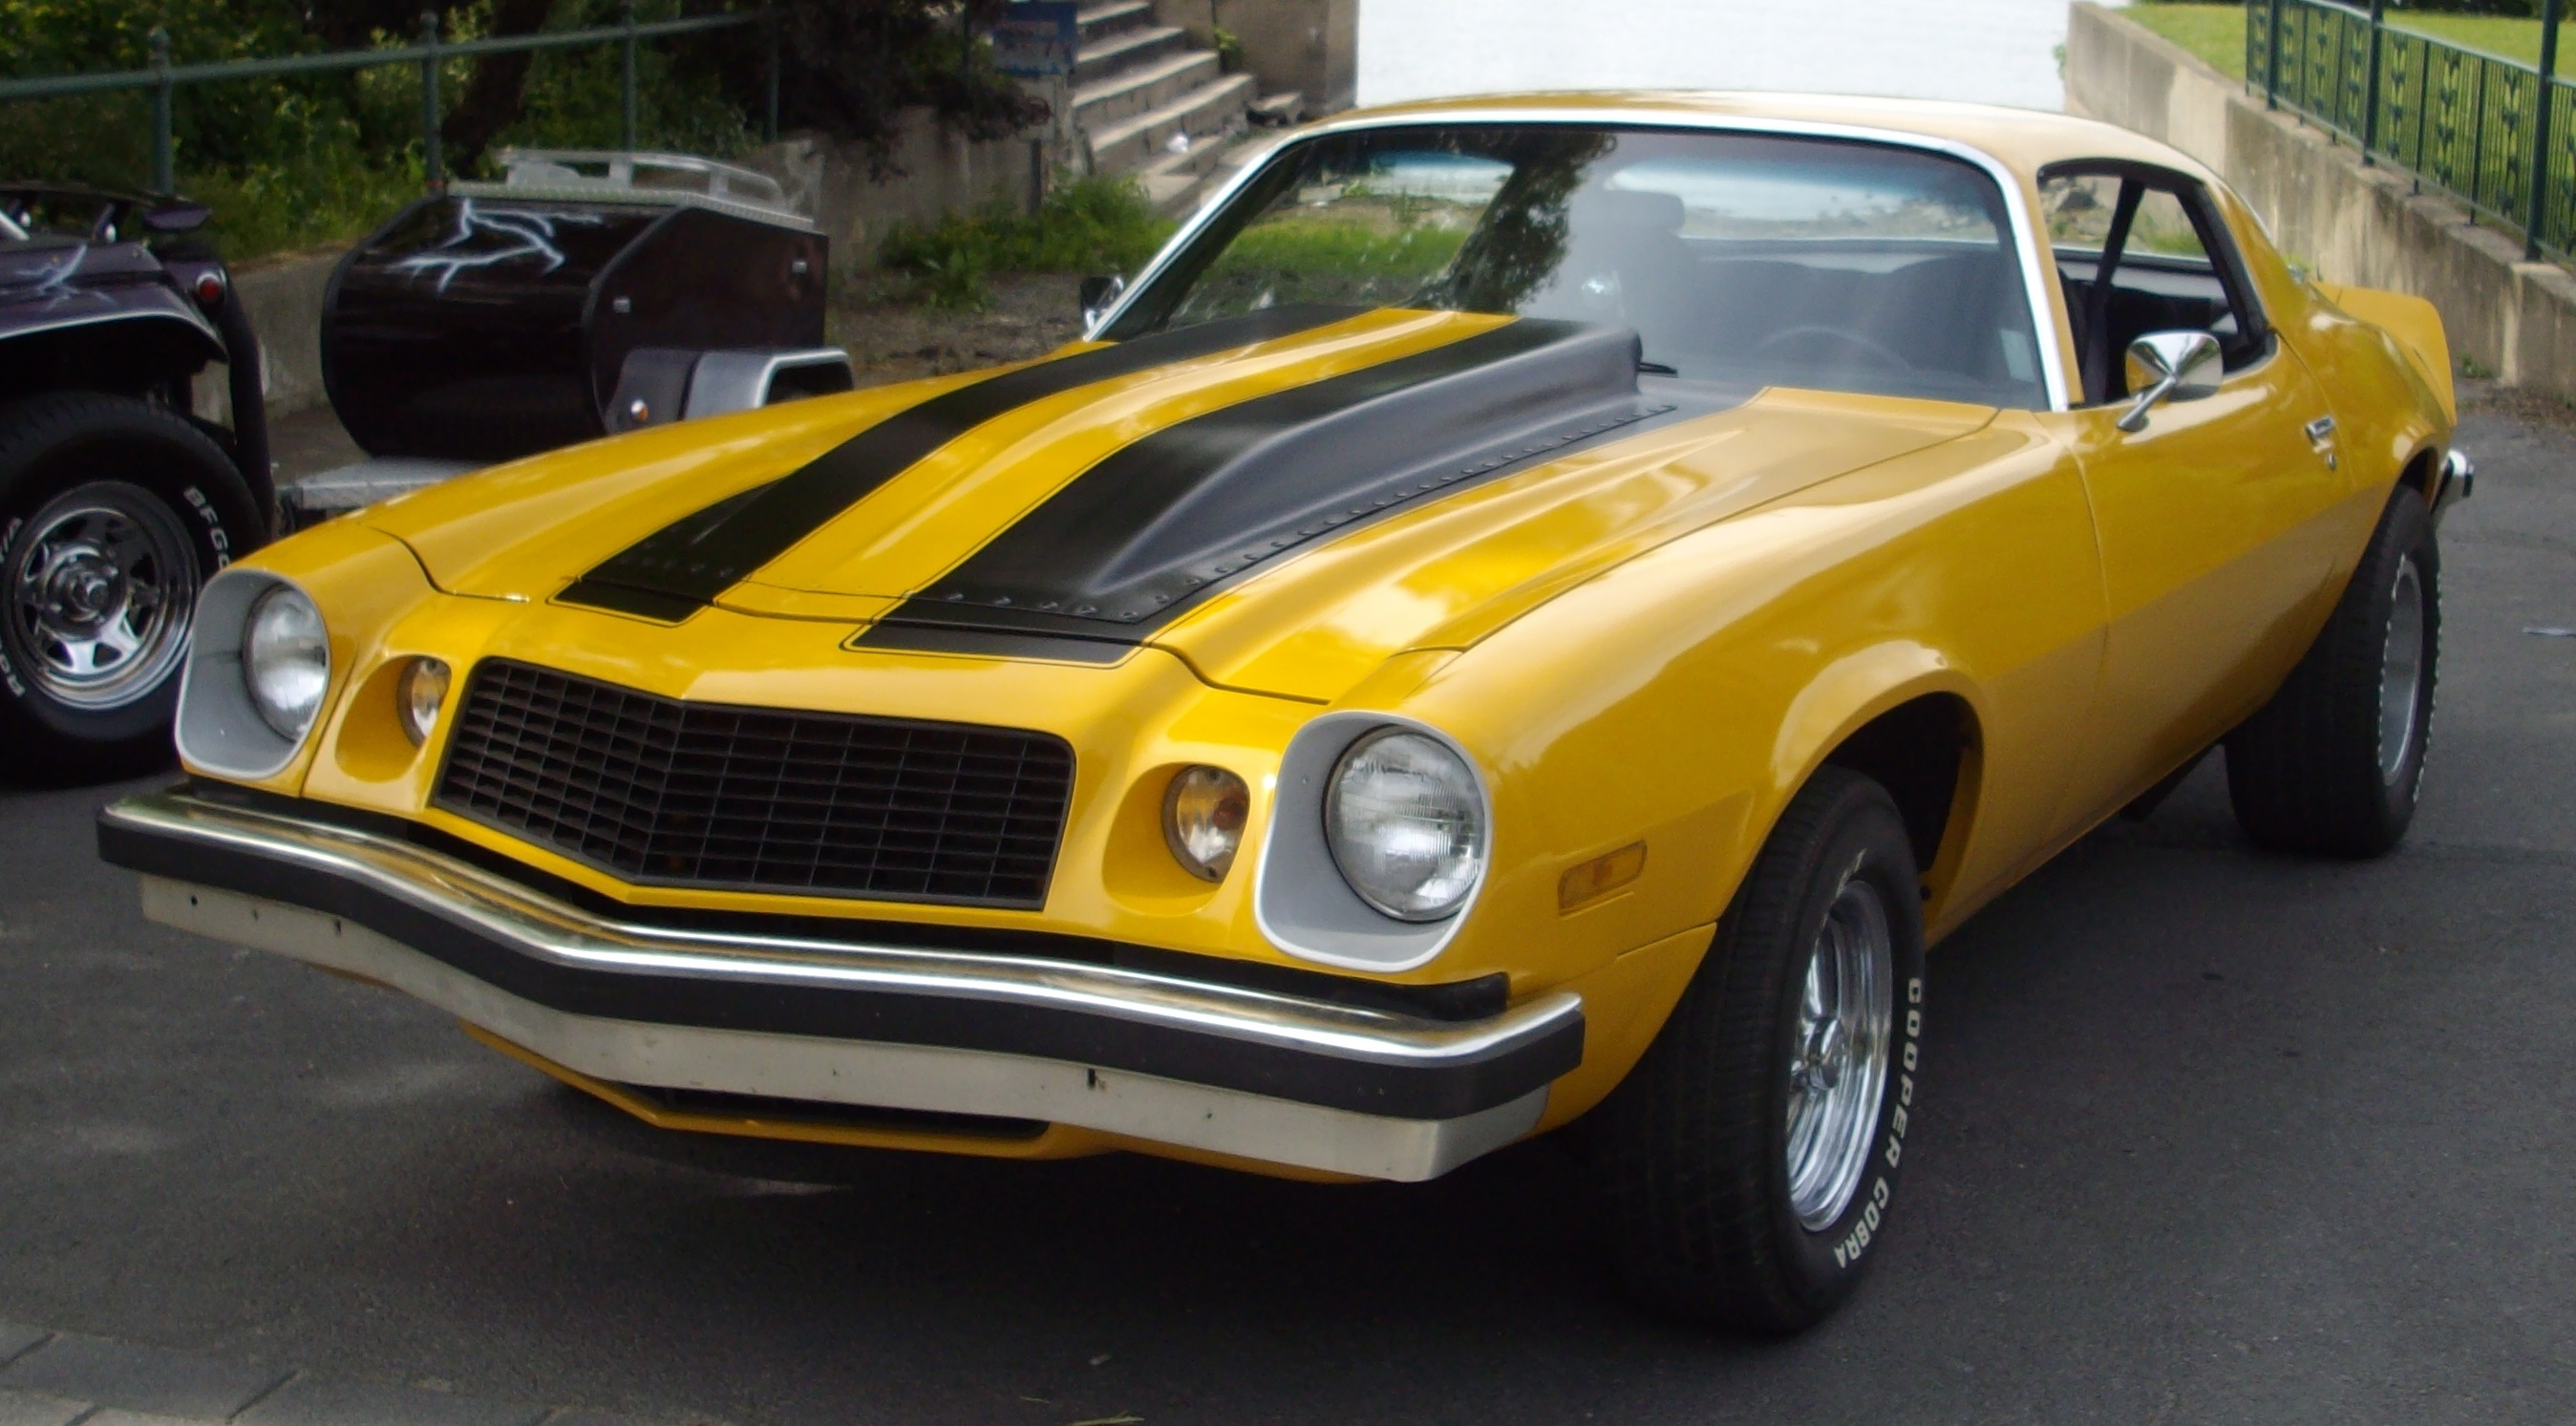 Old Bumblebee Car For Sale